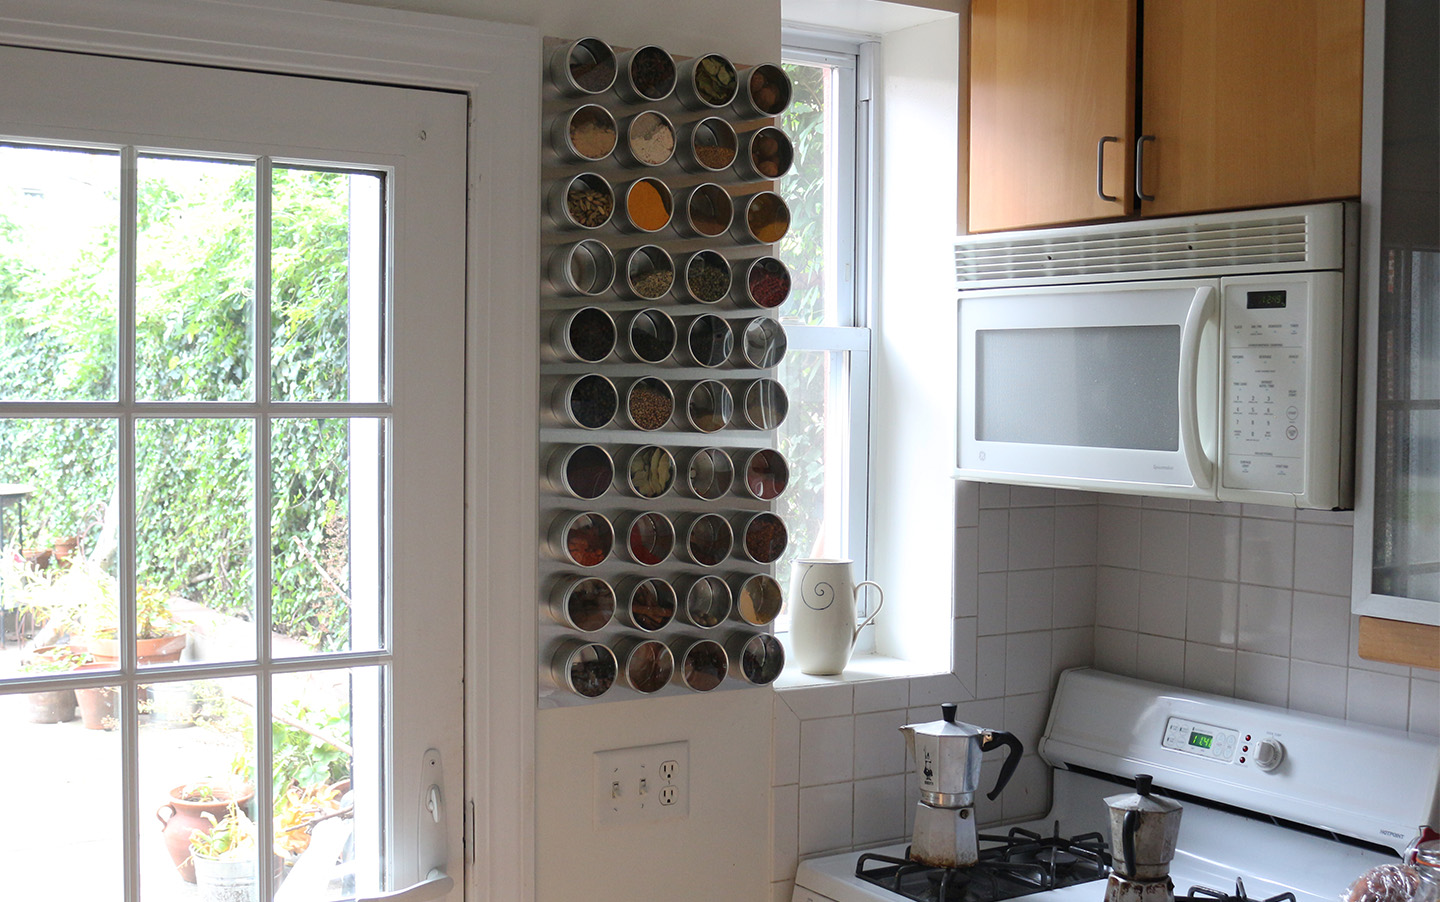 66 Square Feet (Plus): How to make a magnetic spice rack